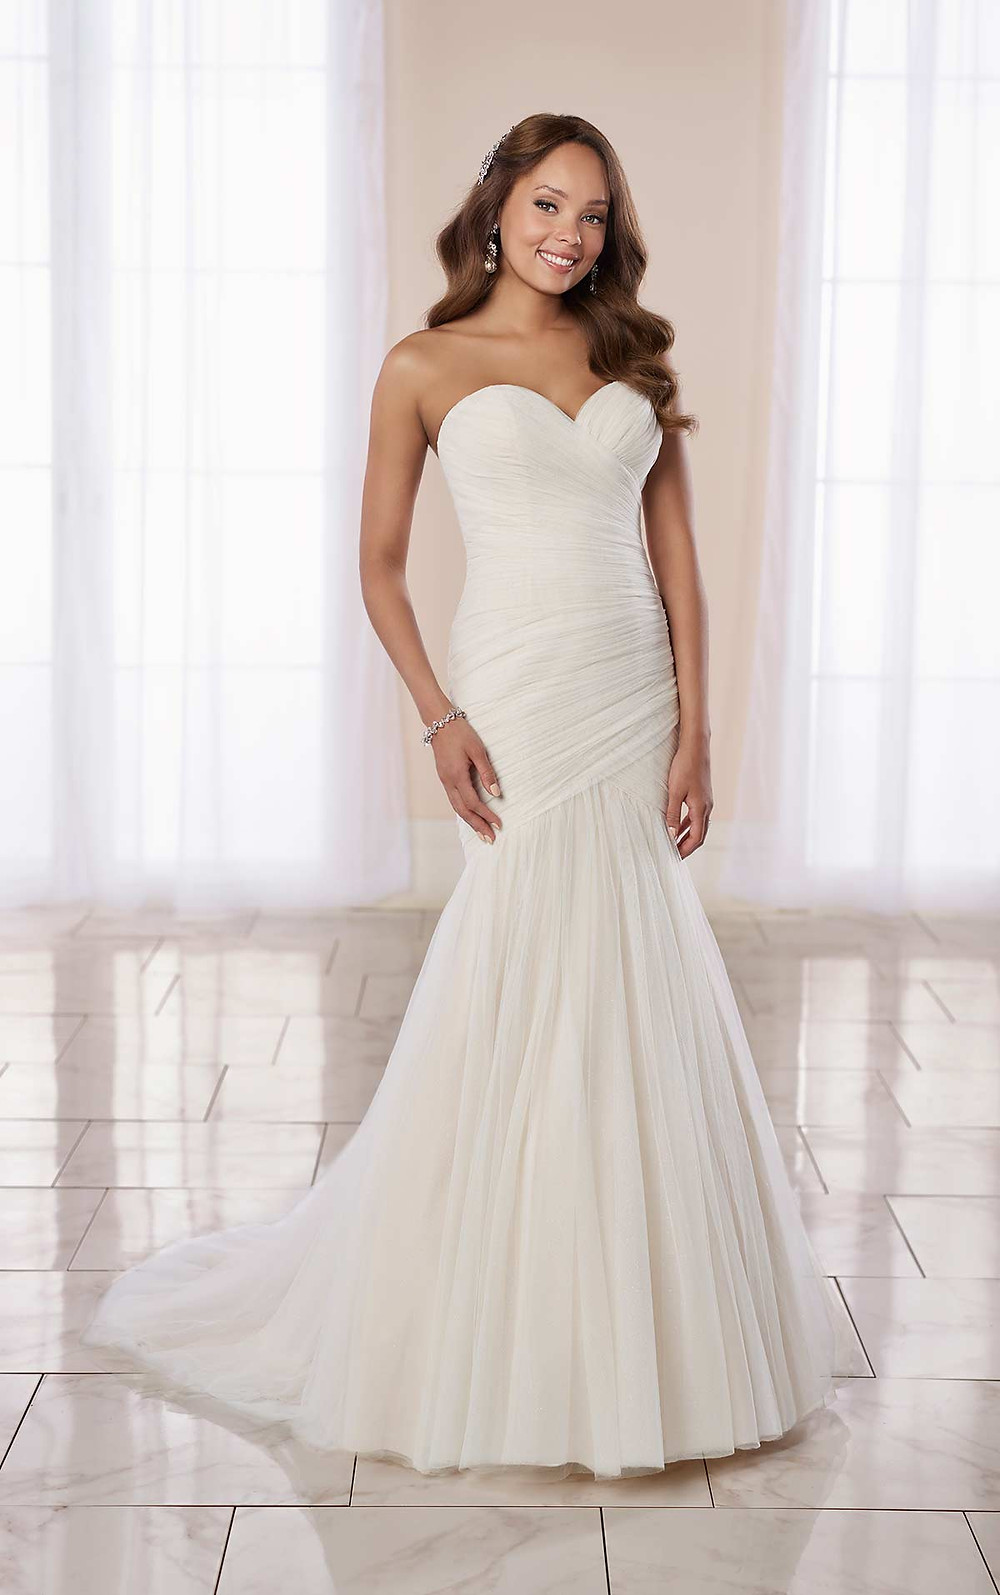 A Stella York 2020 simple strapless fit and flare wedding dress